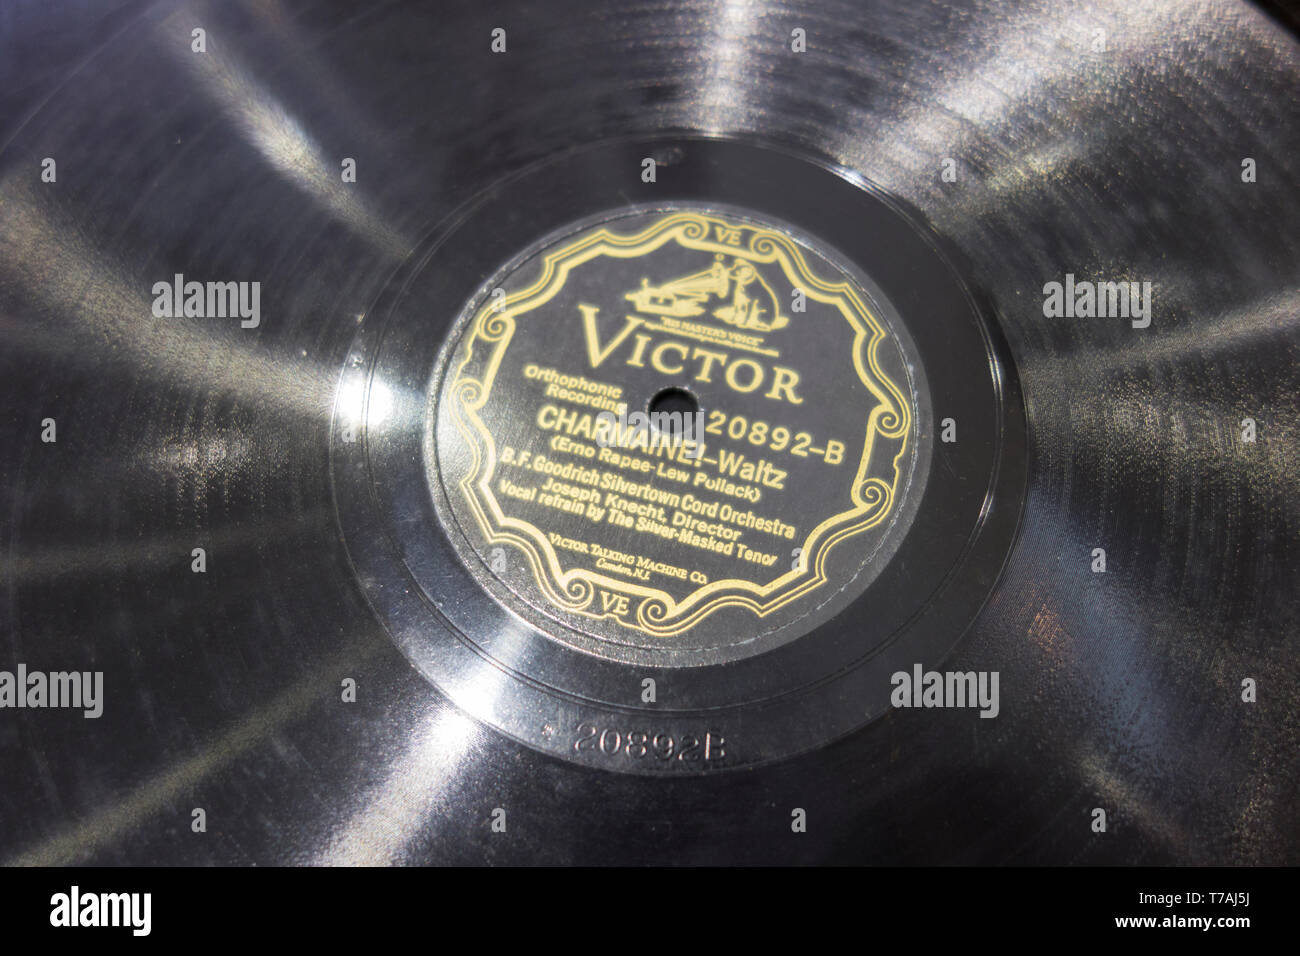 Victor record label with the Charmaine Waltz from the B.F. Goodrich Silvertown Cord Orchestra - Stock Image